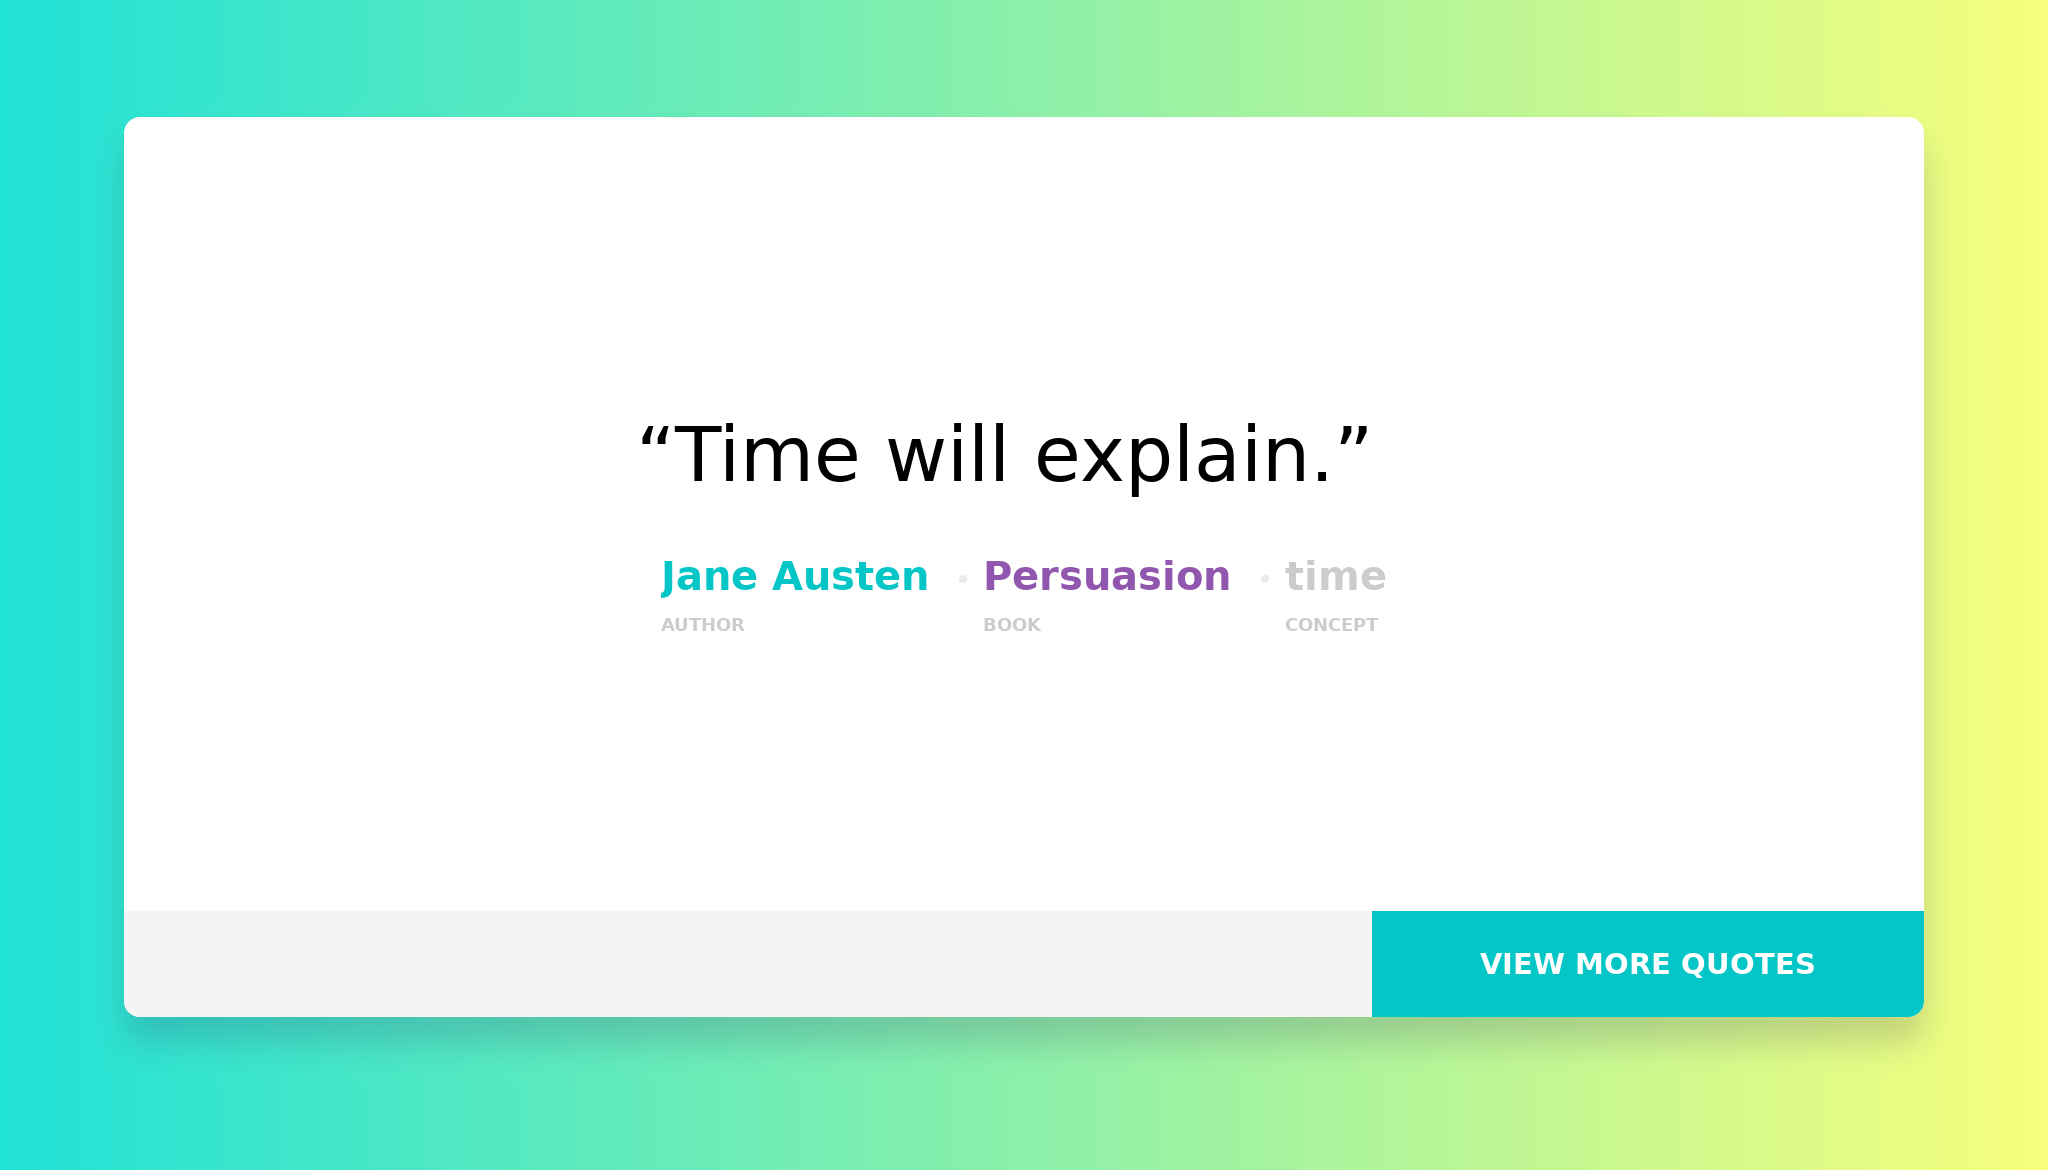 Book Quote No. 1101 janeausten persuasion time in 2020